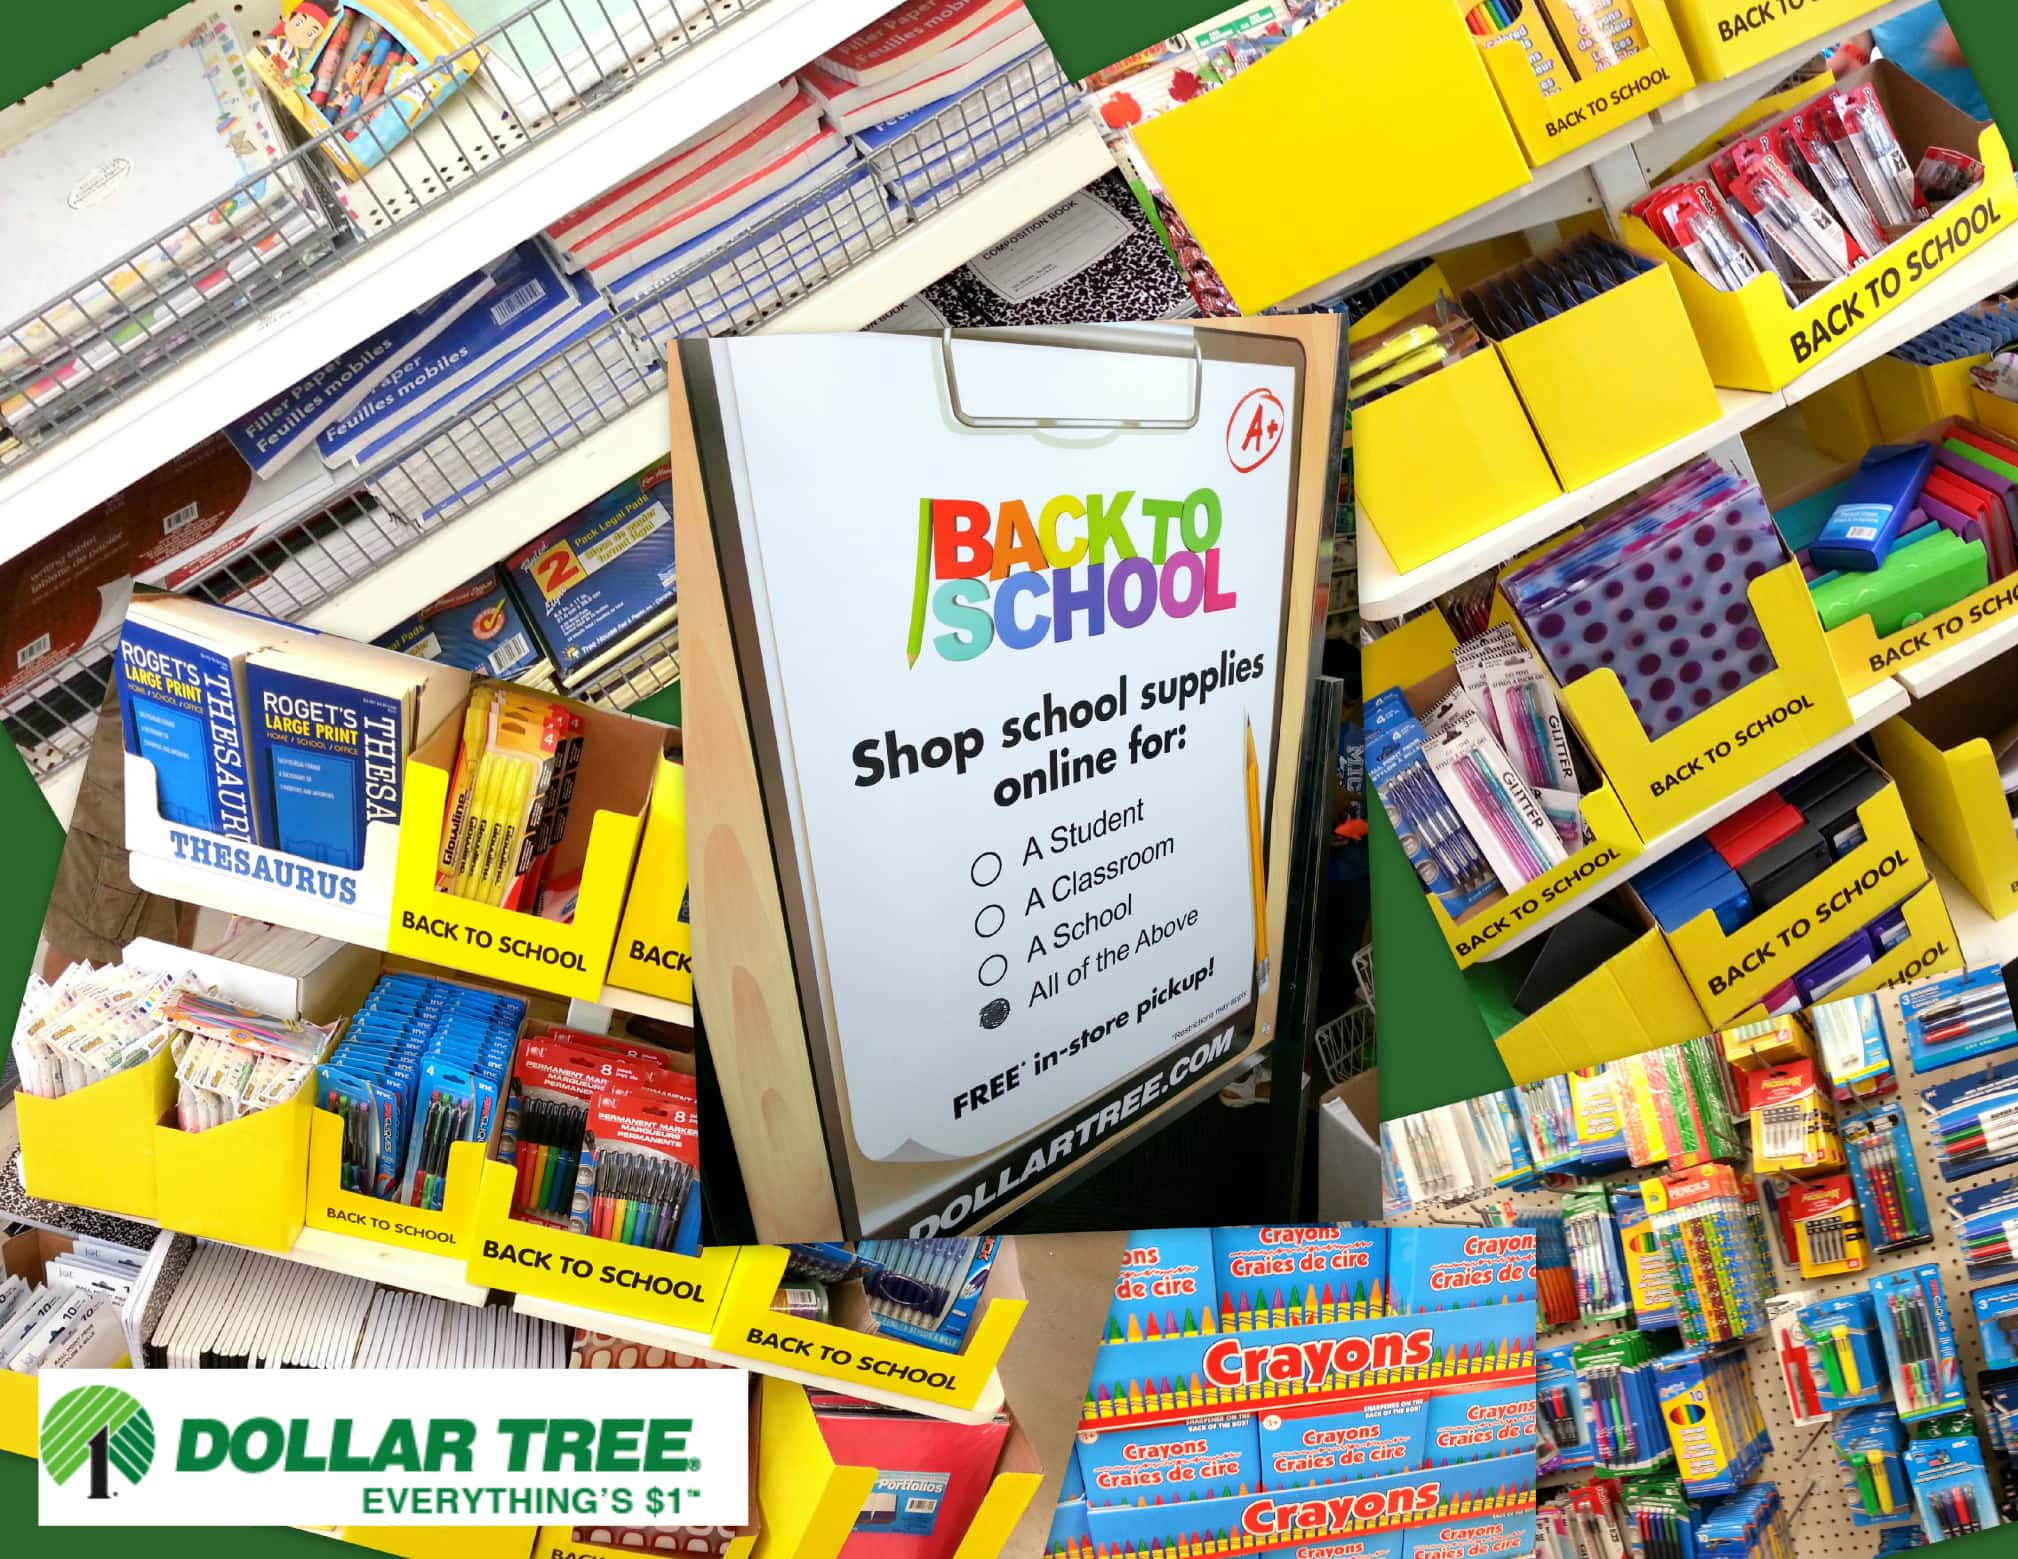 5f4c8d9a65 Dollar Tree makes back-to-school shopping affordable. - Mommy Snippets